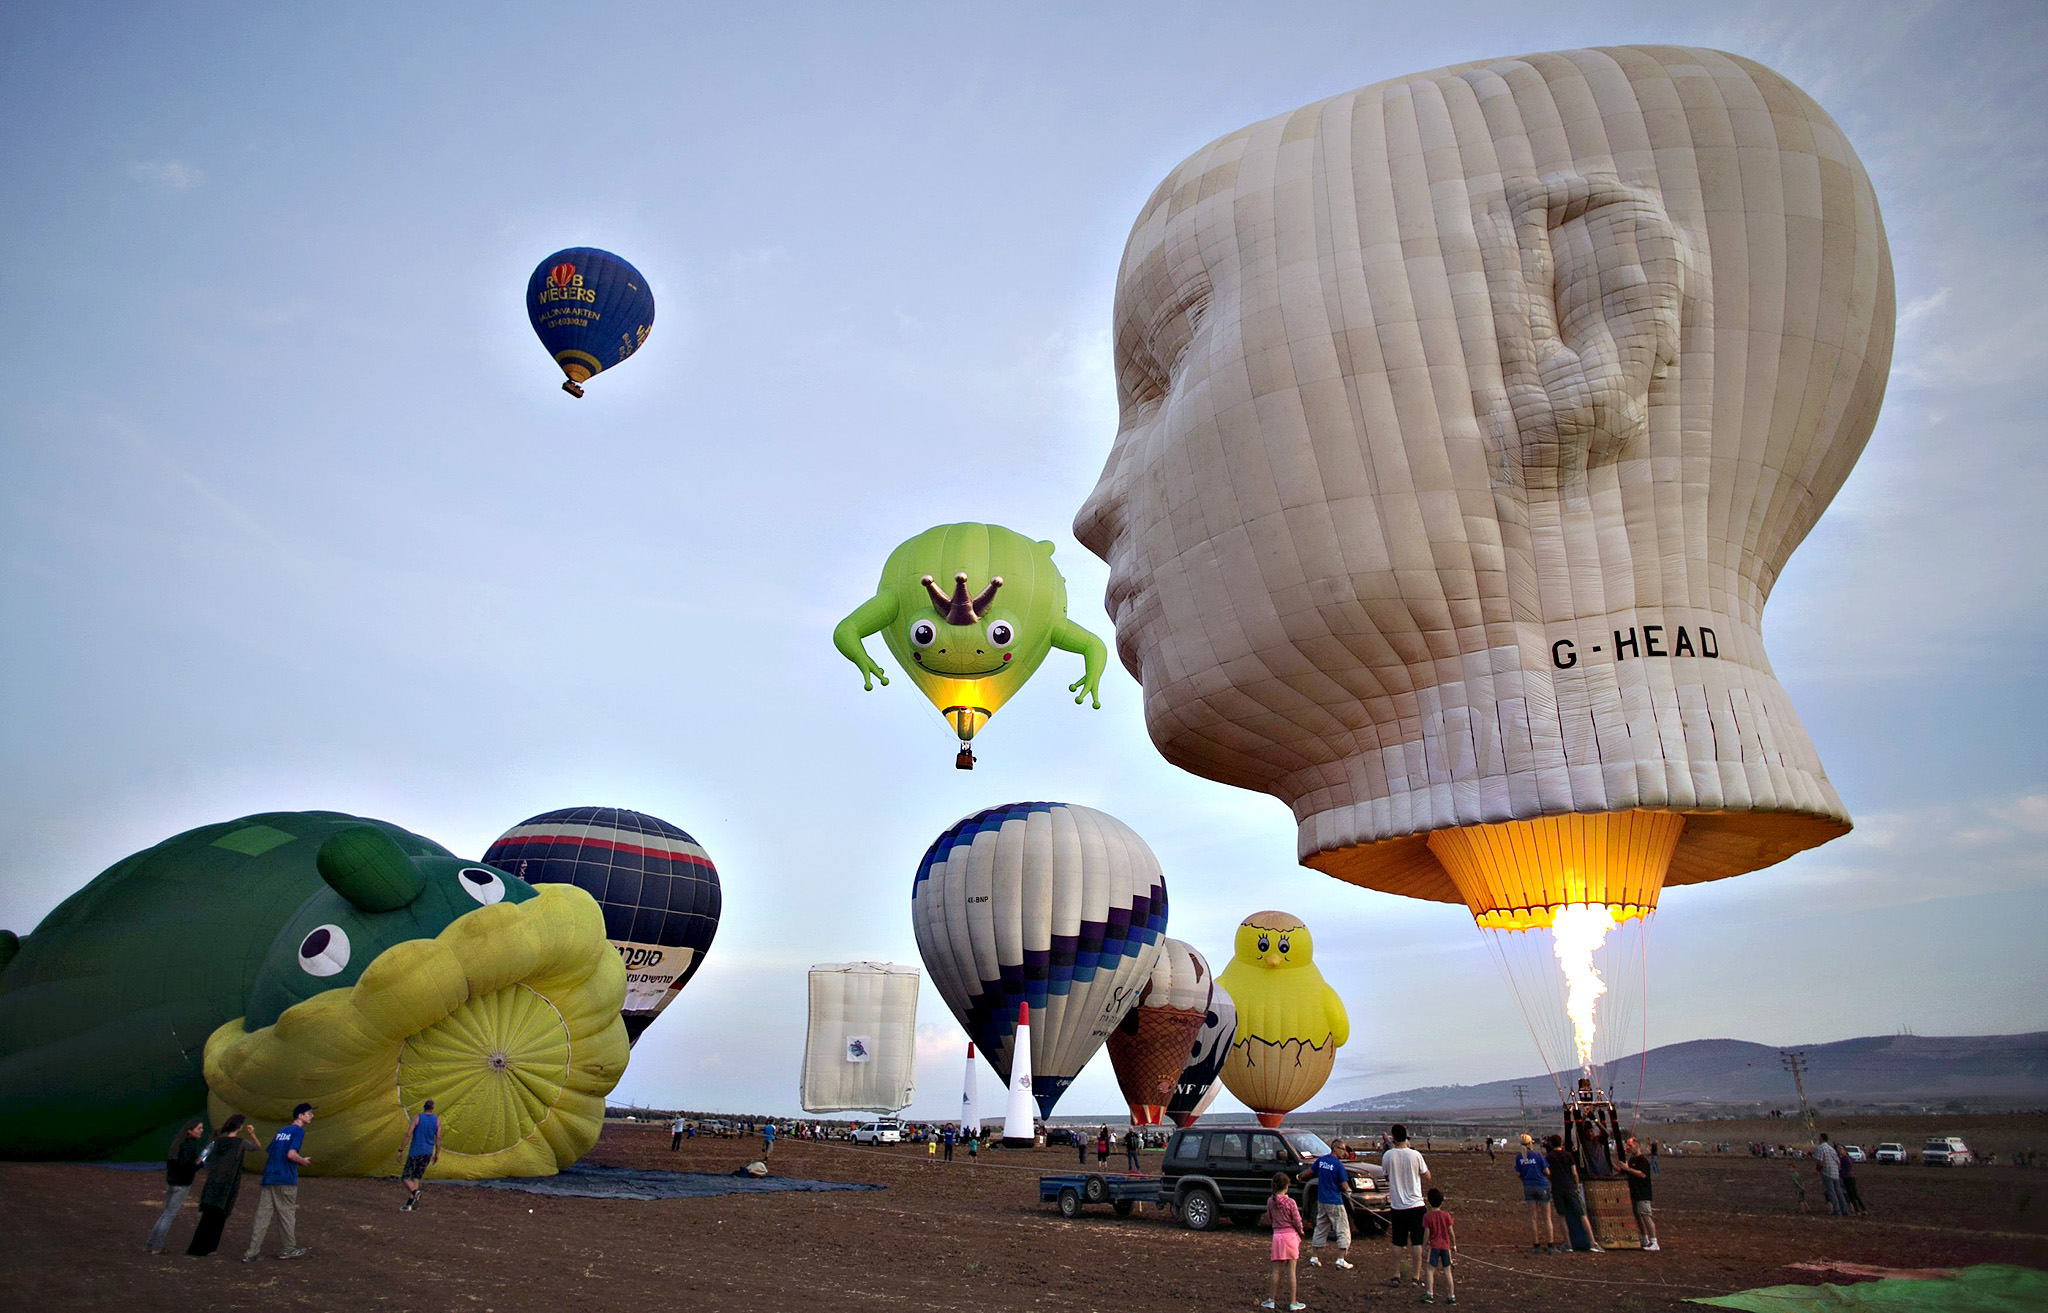 Hot air balloons are prepared for a flight as others take off during an international hot air balloon festival at Maayan Harod National park in northern Israel on Wednesday